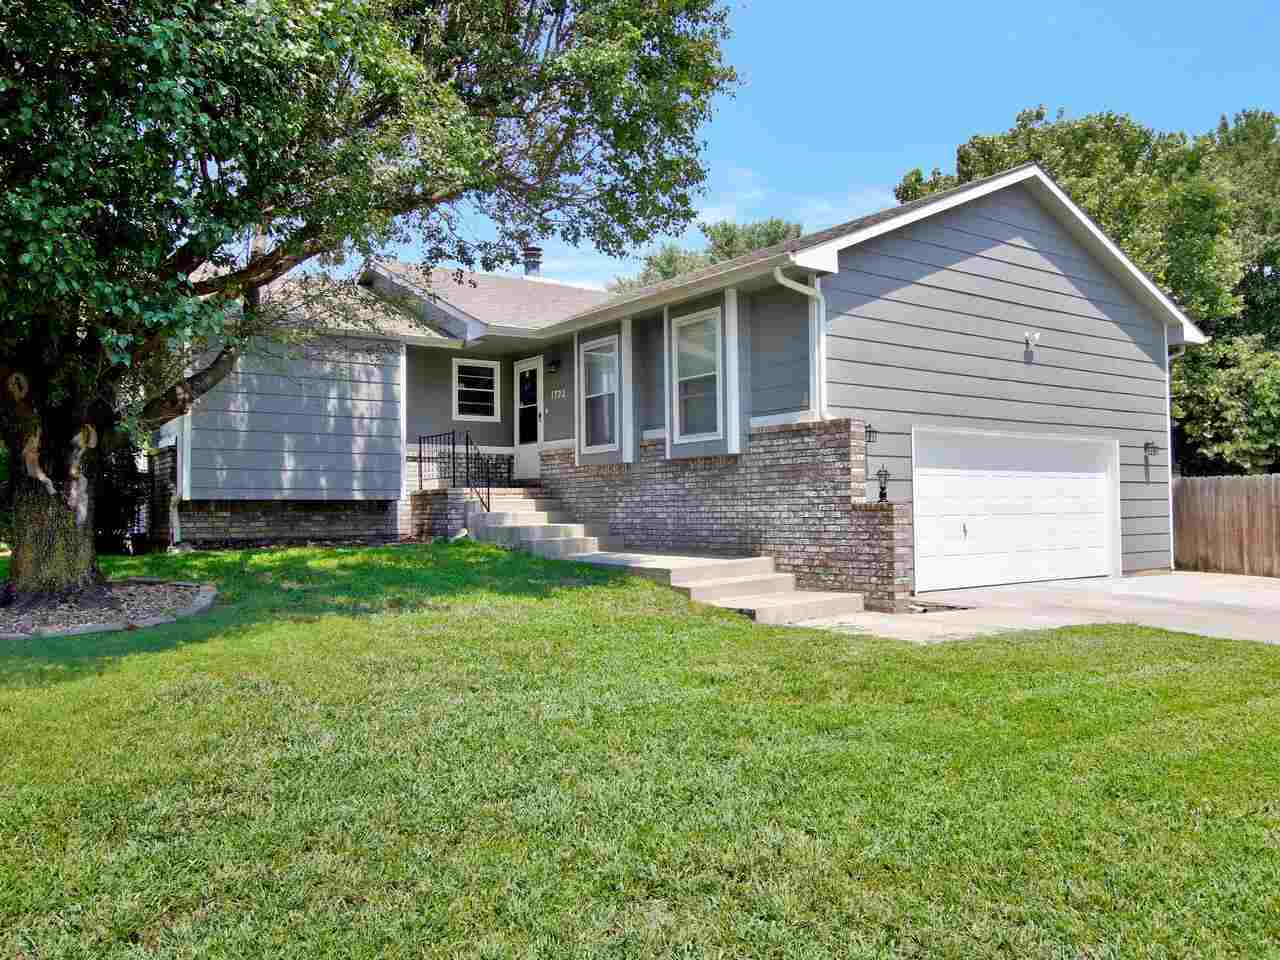 Location! Location! Location! Newly remodeled 4 bedroom 3 bathroom home on a corner lot with a walk